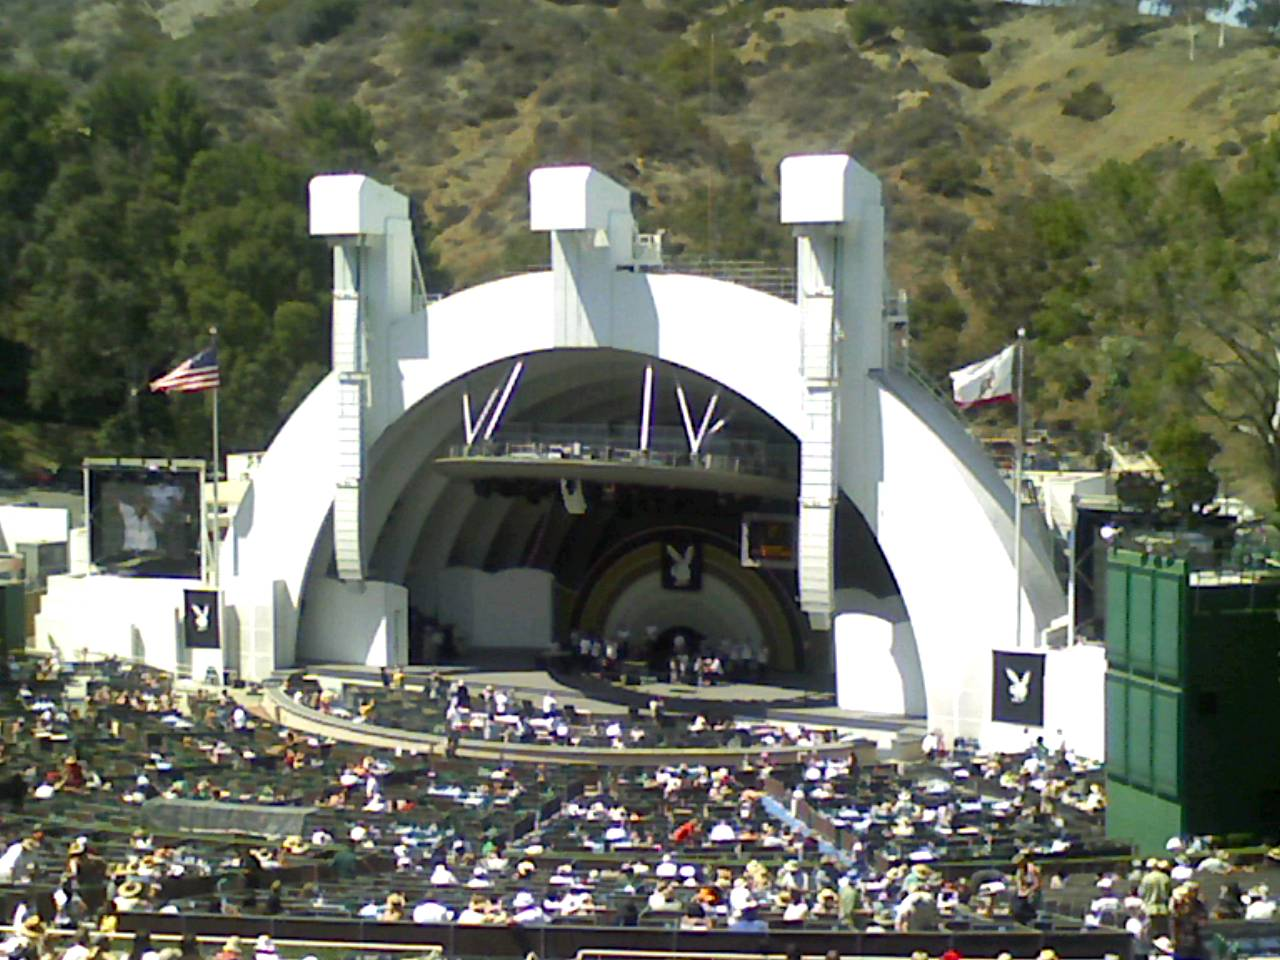 Playboy Jazz Festival hosted in the Hollywood Bowl 2007